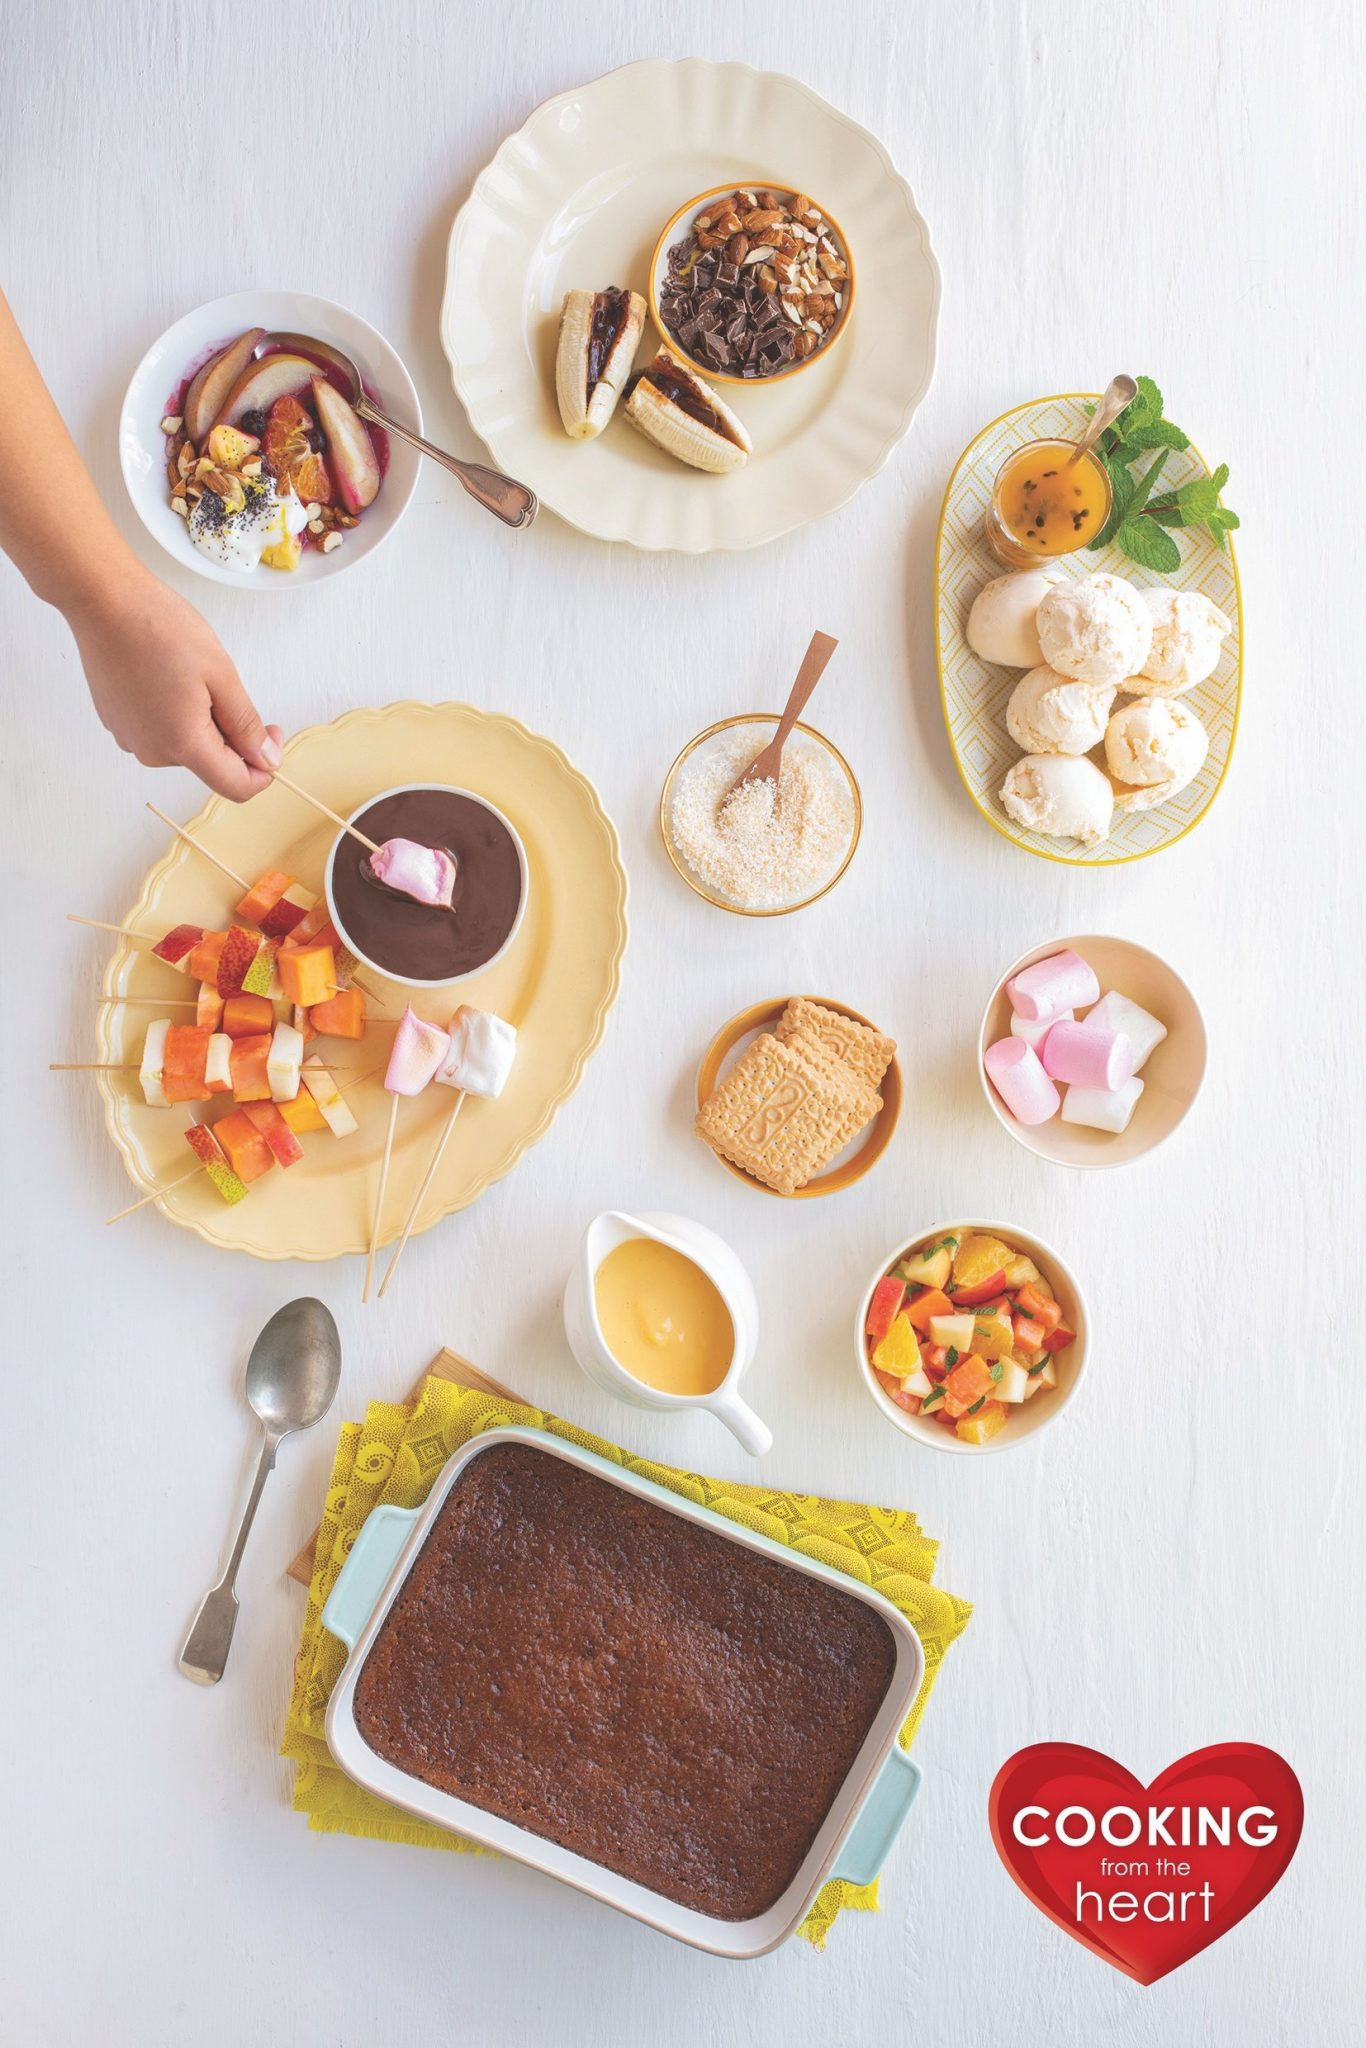 Chocolate Dip, Heart-healthy Braai recipes, Cooking from the Heart, Sonia Cabano blog eatdrinkcapetown food wine travel